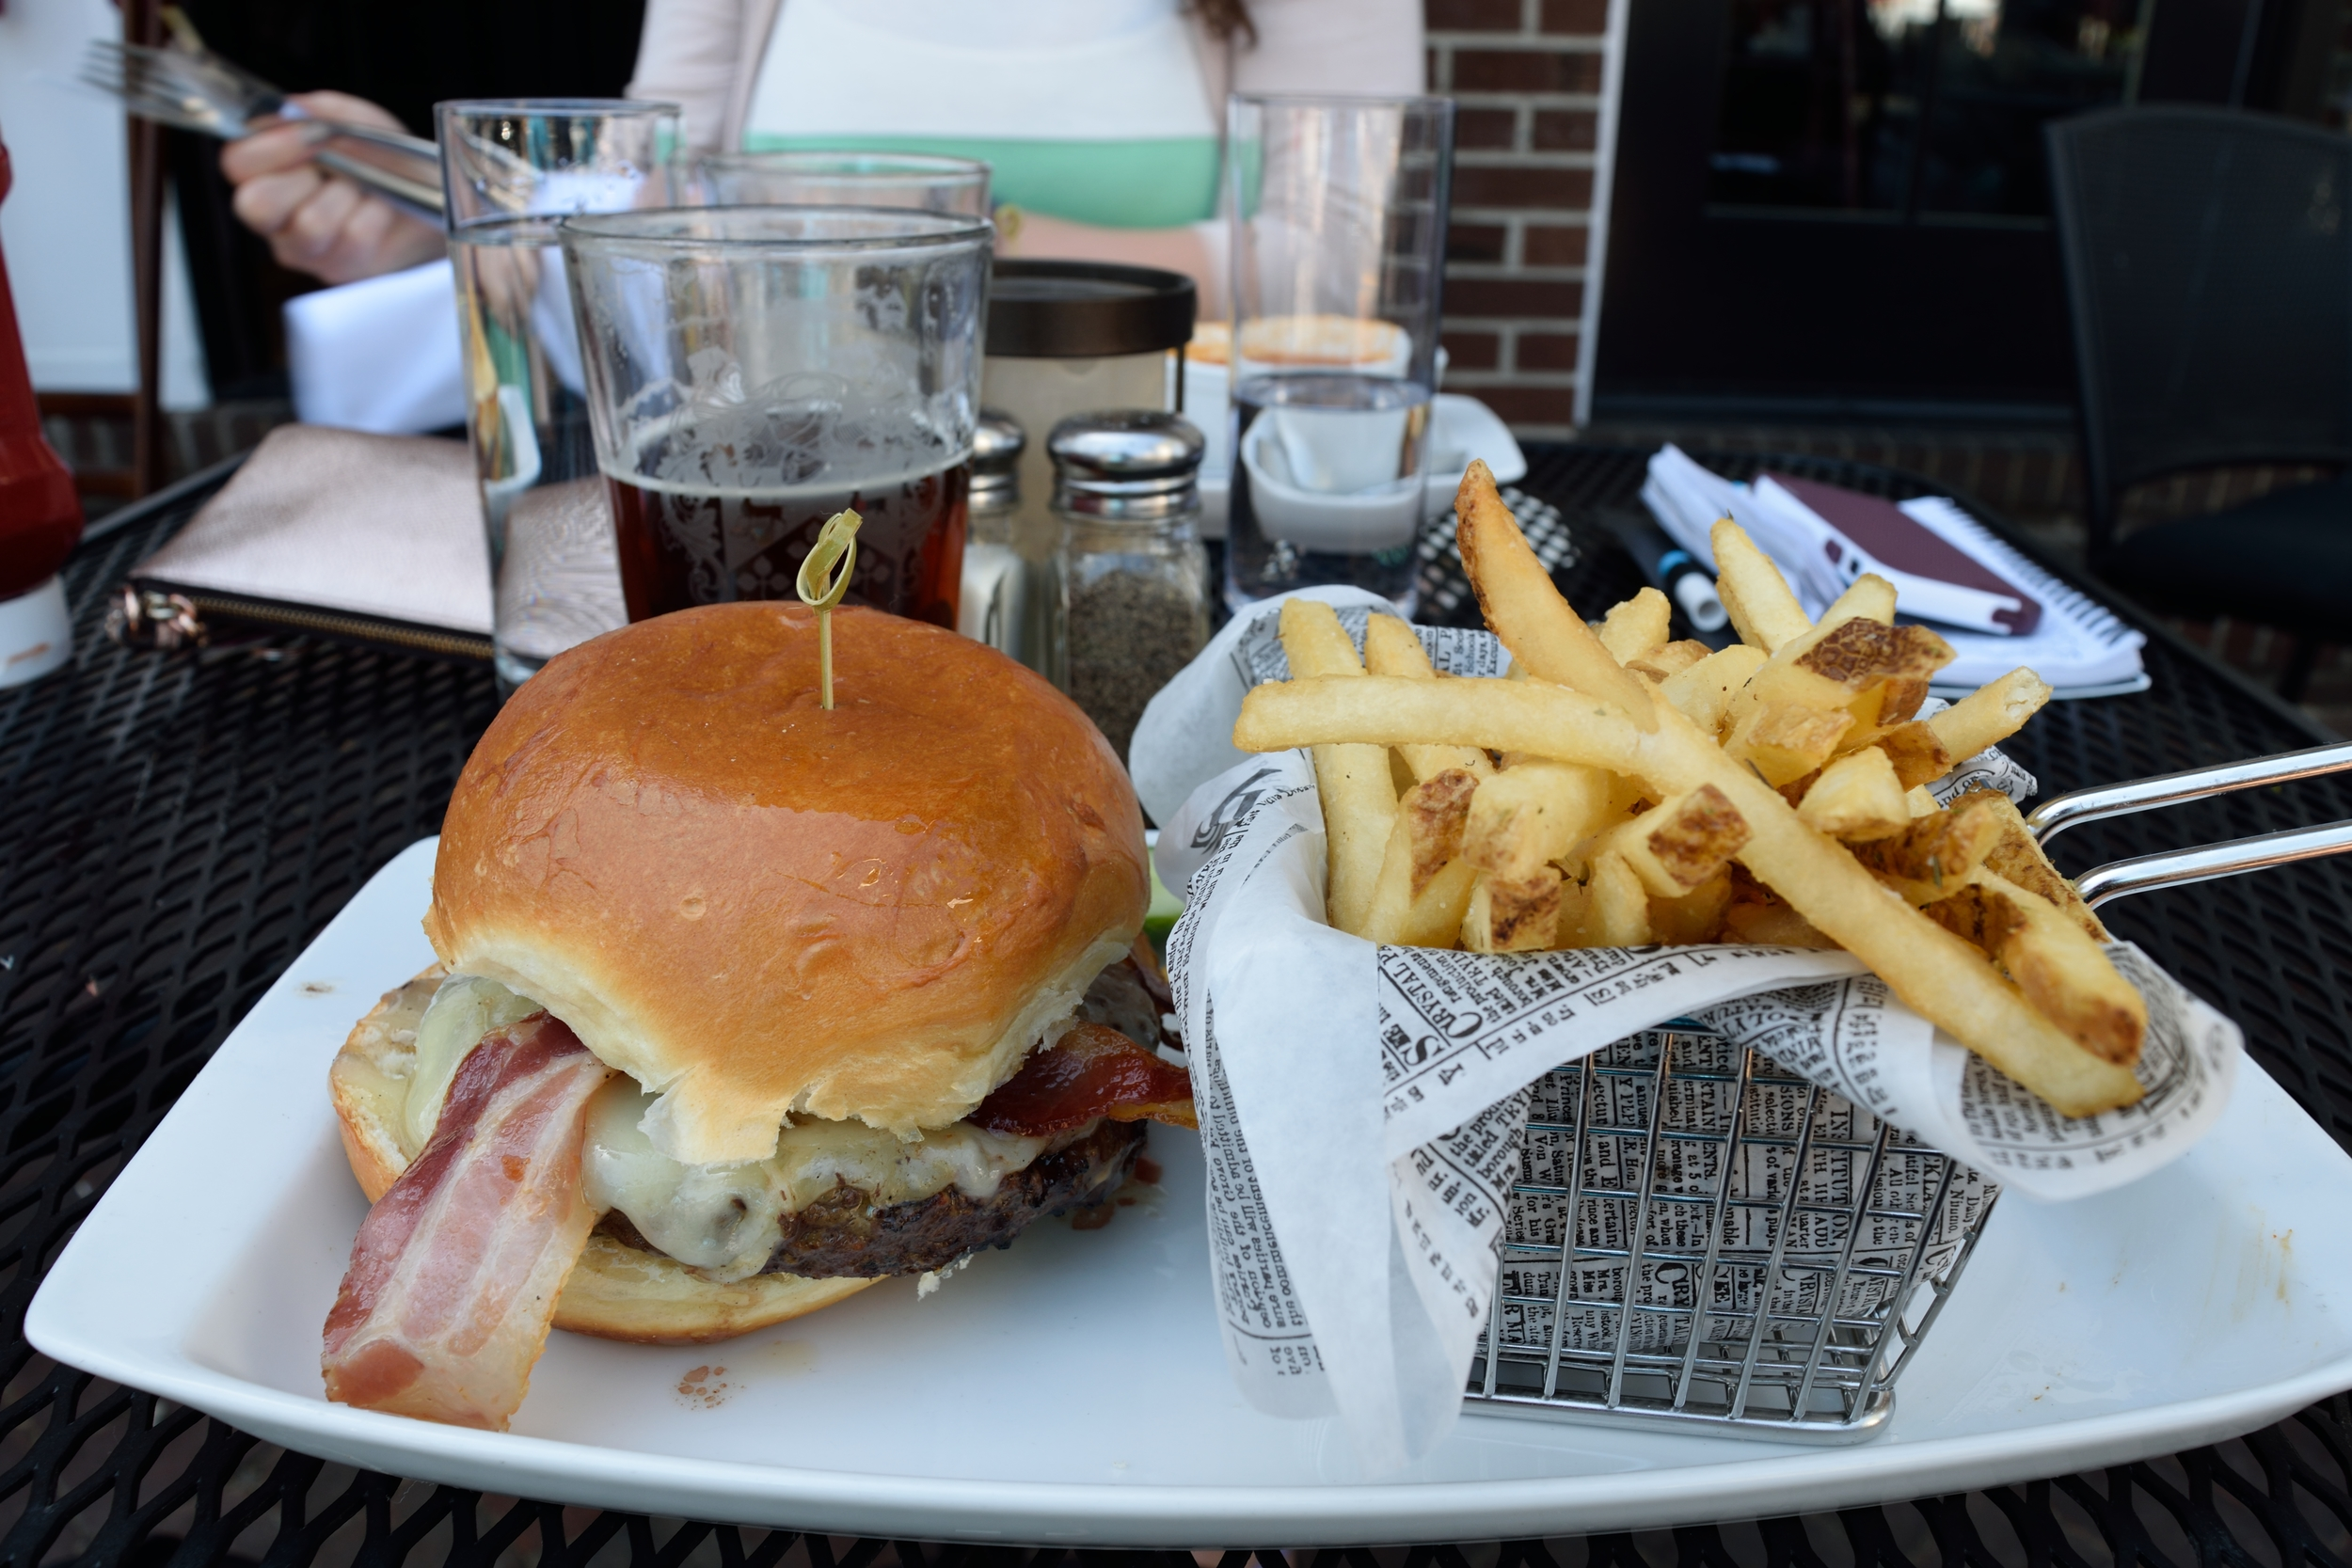 The Chi-Town burger with fries. Yes, it has bacon. Bacon!